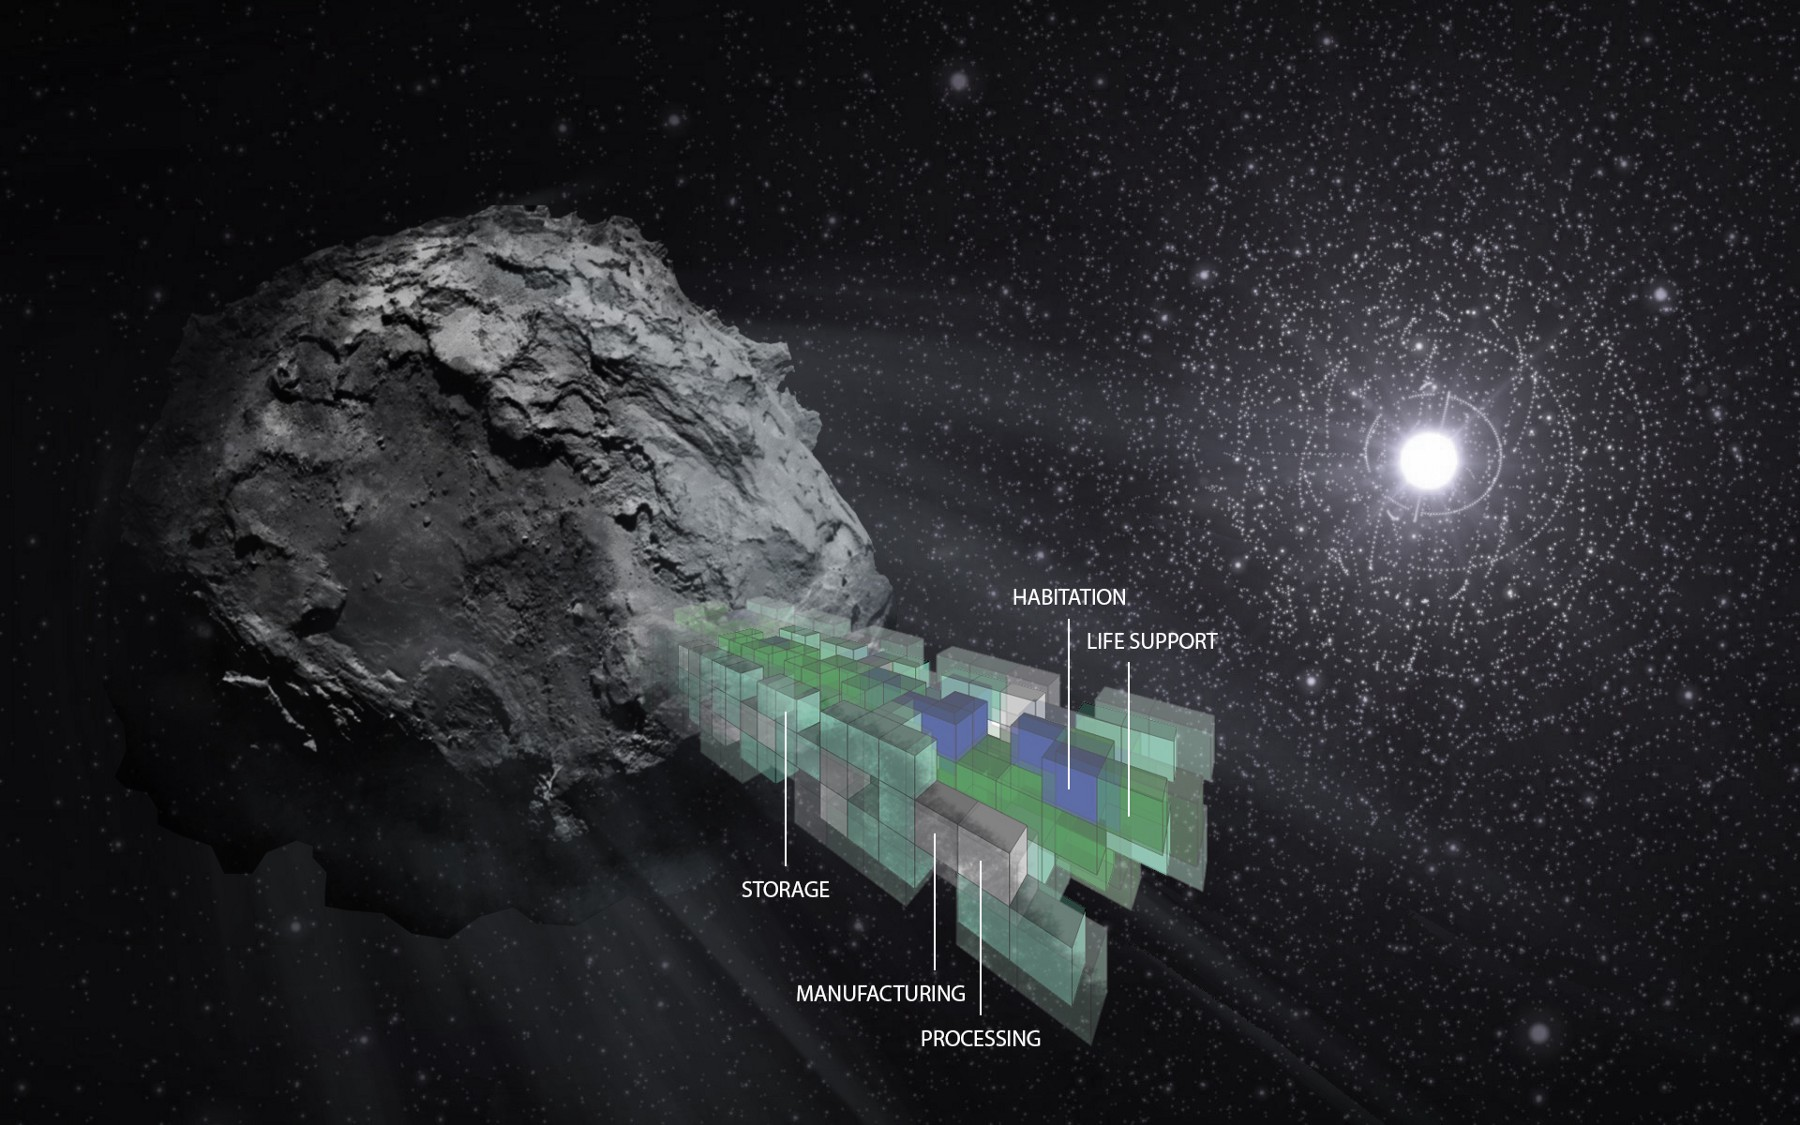 Conceptual model of a growing and evolving asteroid starship. The image of comet 67P by ESA is used as a placeholder for a large asteroid. Composite image by Francisco Muñoz and Anton Dobrevski